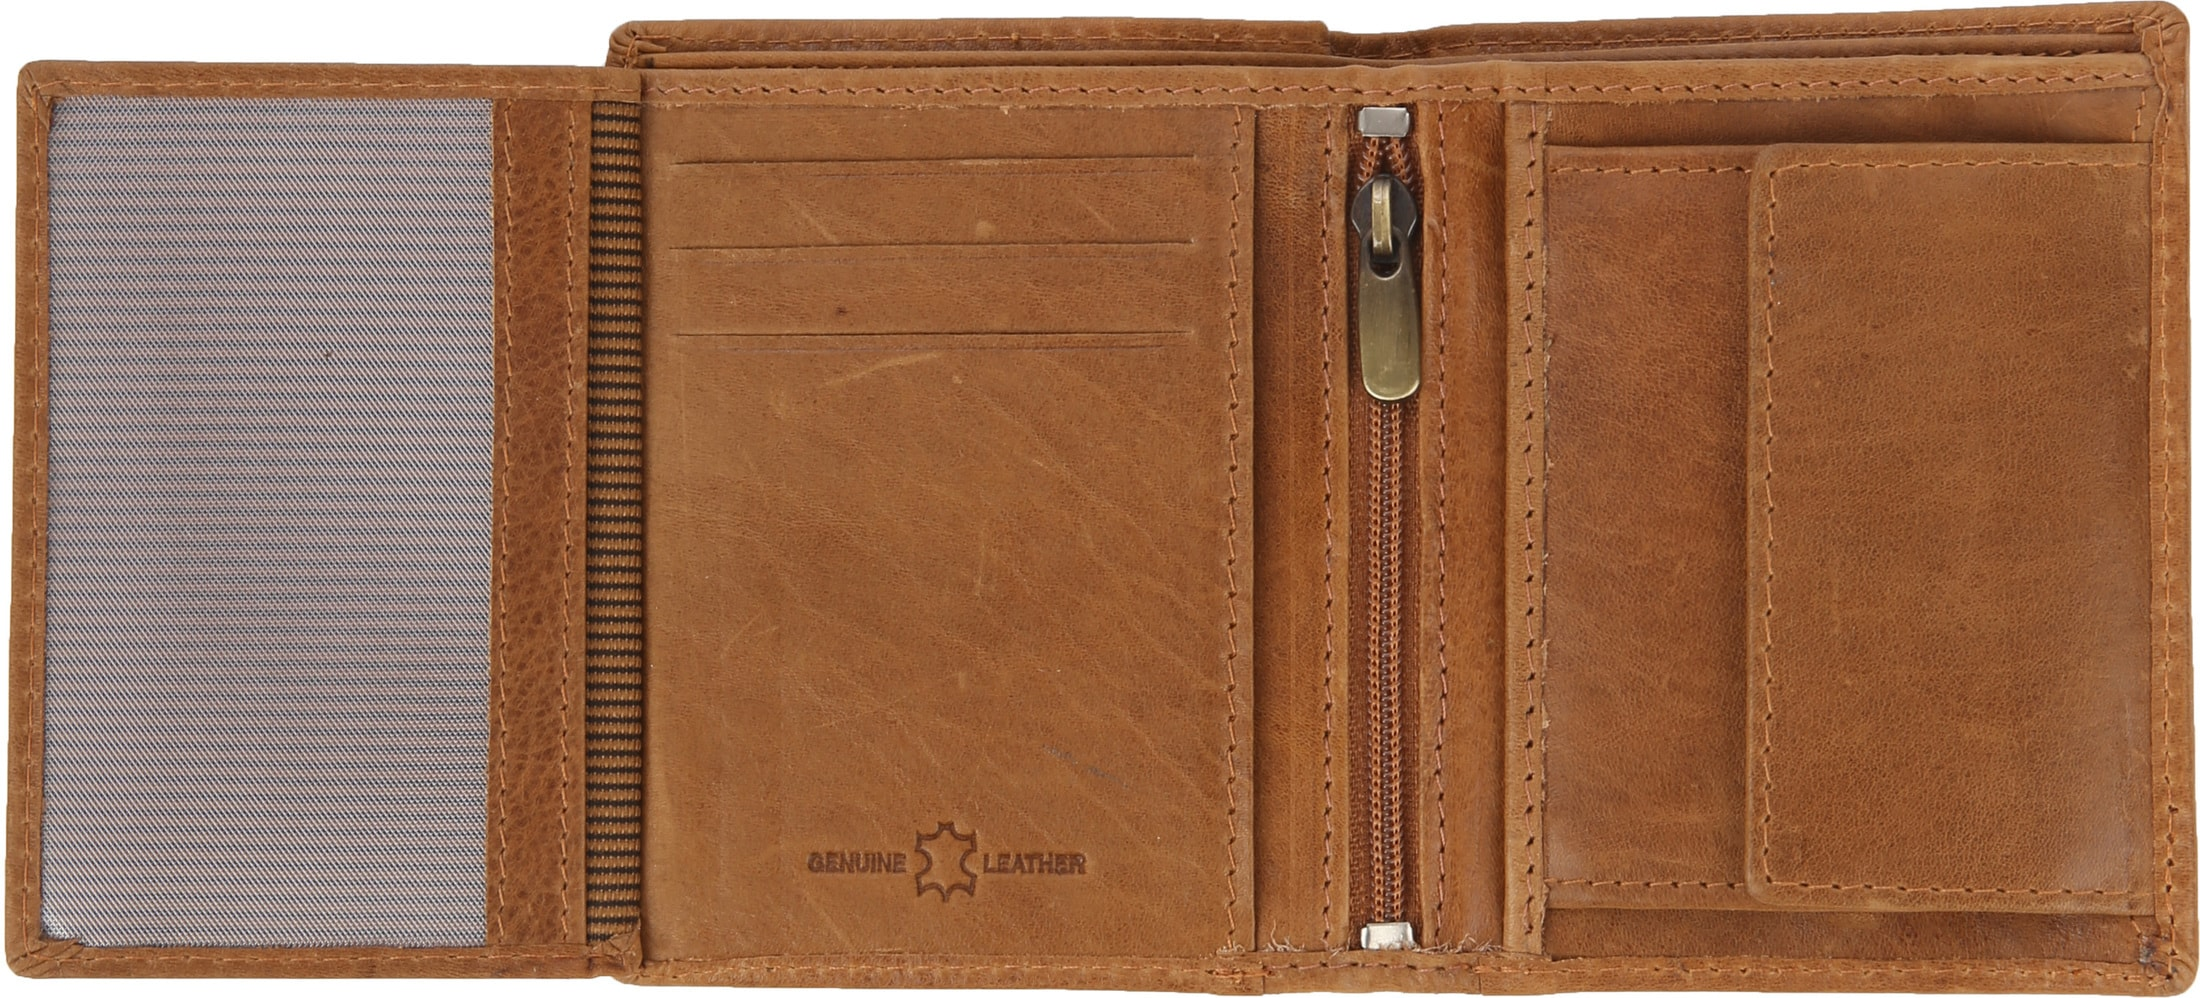 Suitable Wallet Nikkei Light Brown Leather - Skim Proof foto 2